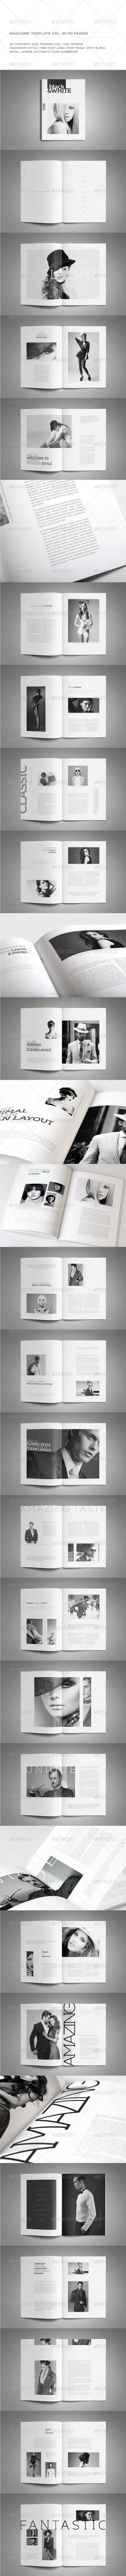 GraphicRiver A5 Portrait 50 Pages MGZ Vol 30 7655061